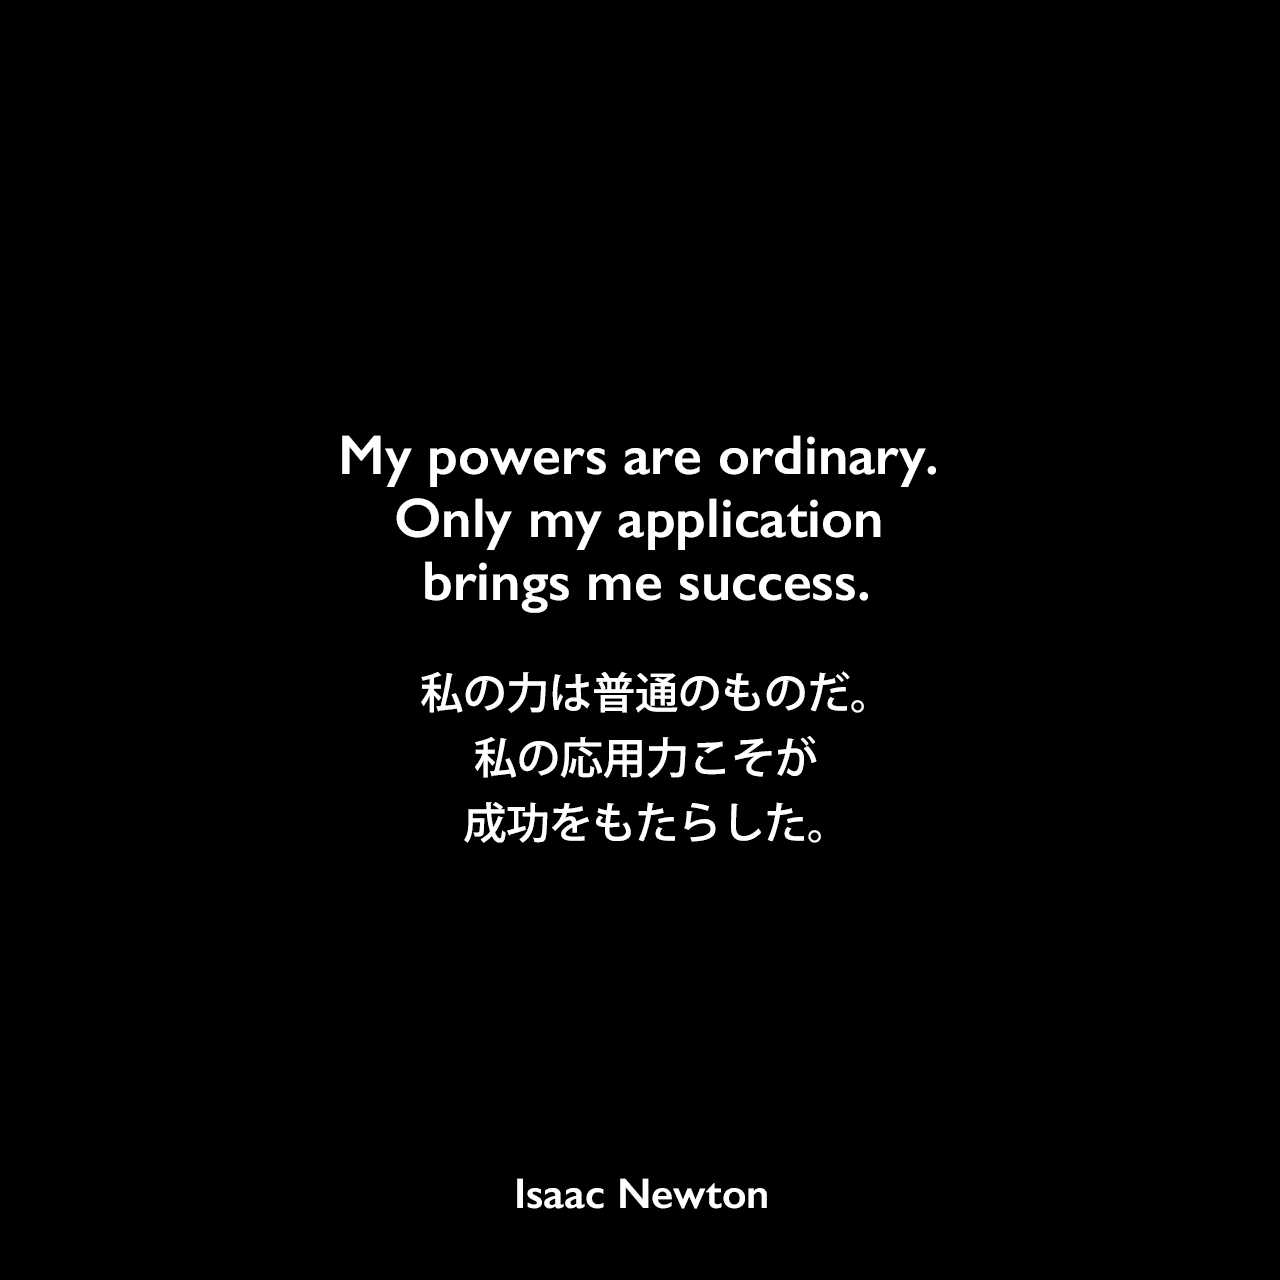 My powers are ordinary. Only my application brings me success.私の力は普通のものだ。私の応用力こそが成功をもたらした。Isaac Newton